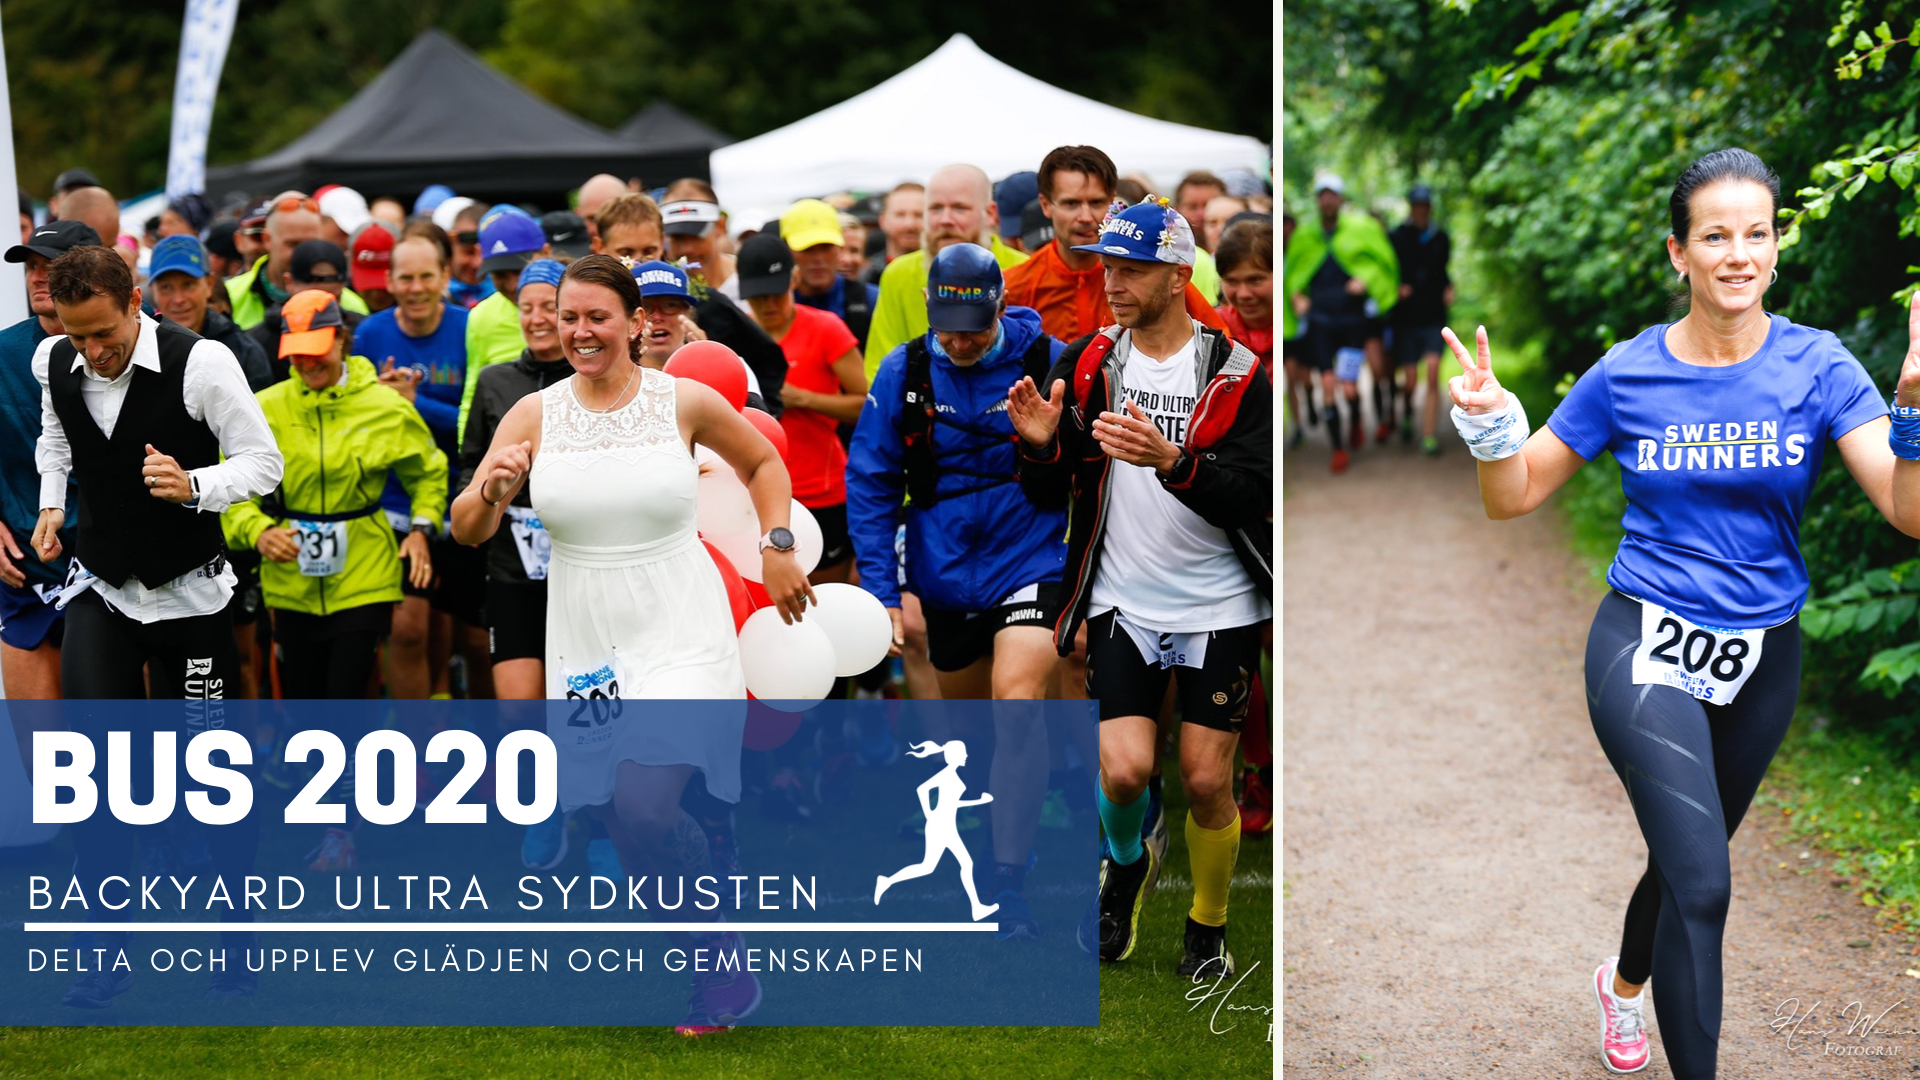 Backyard Ultra Sydkusten Sweden Runners